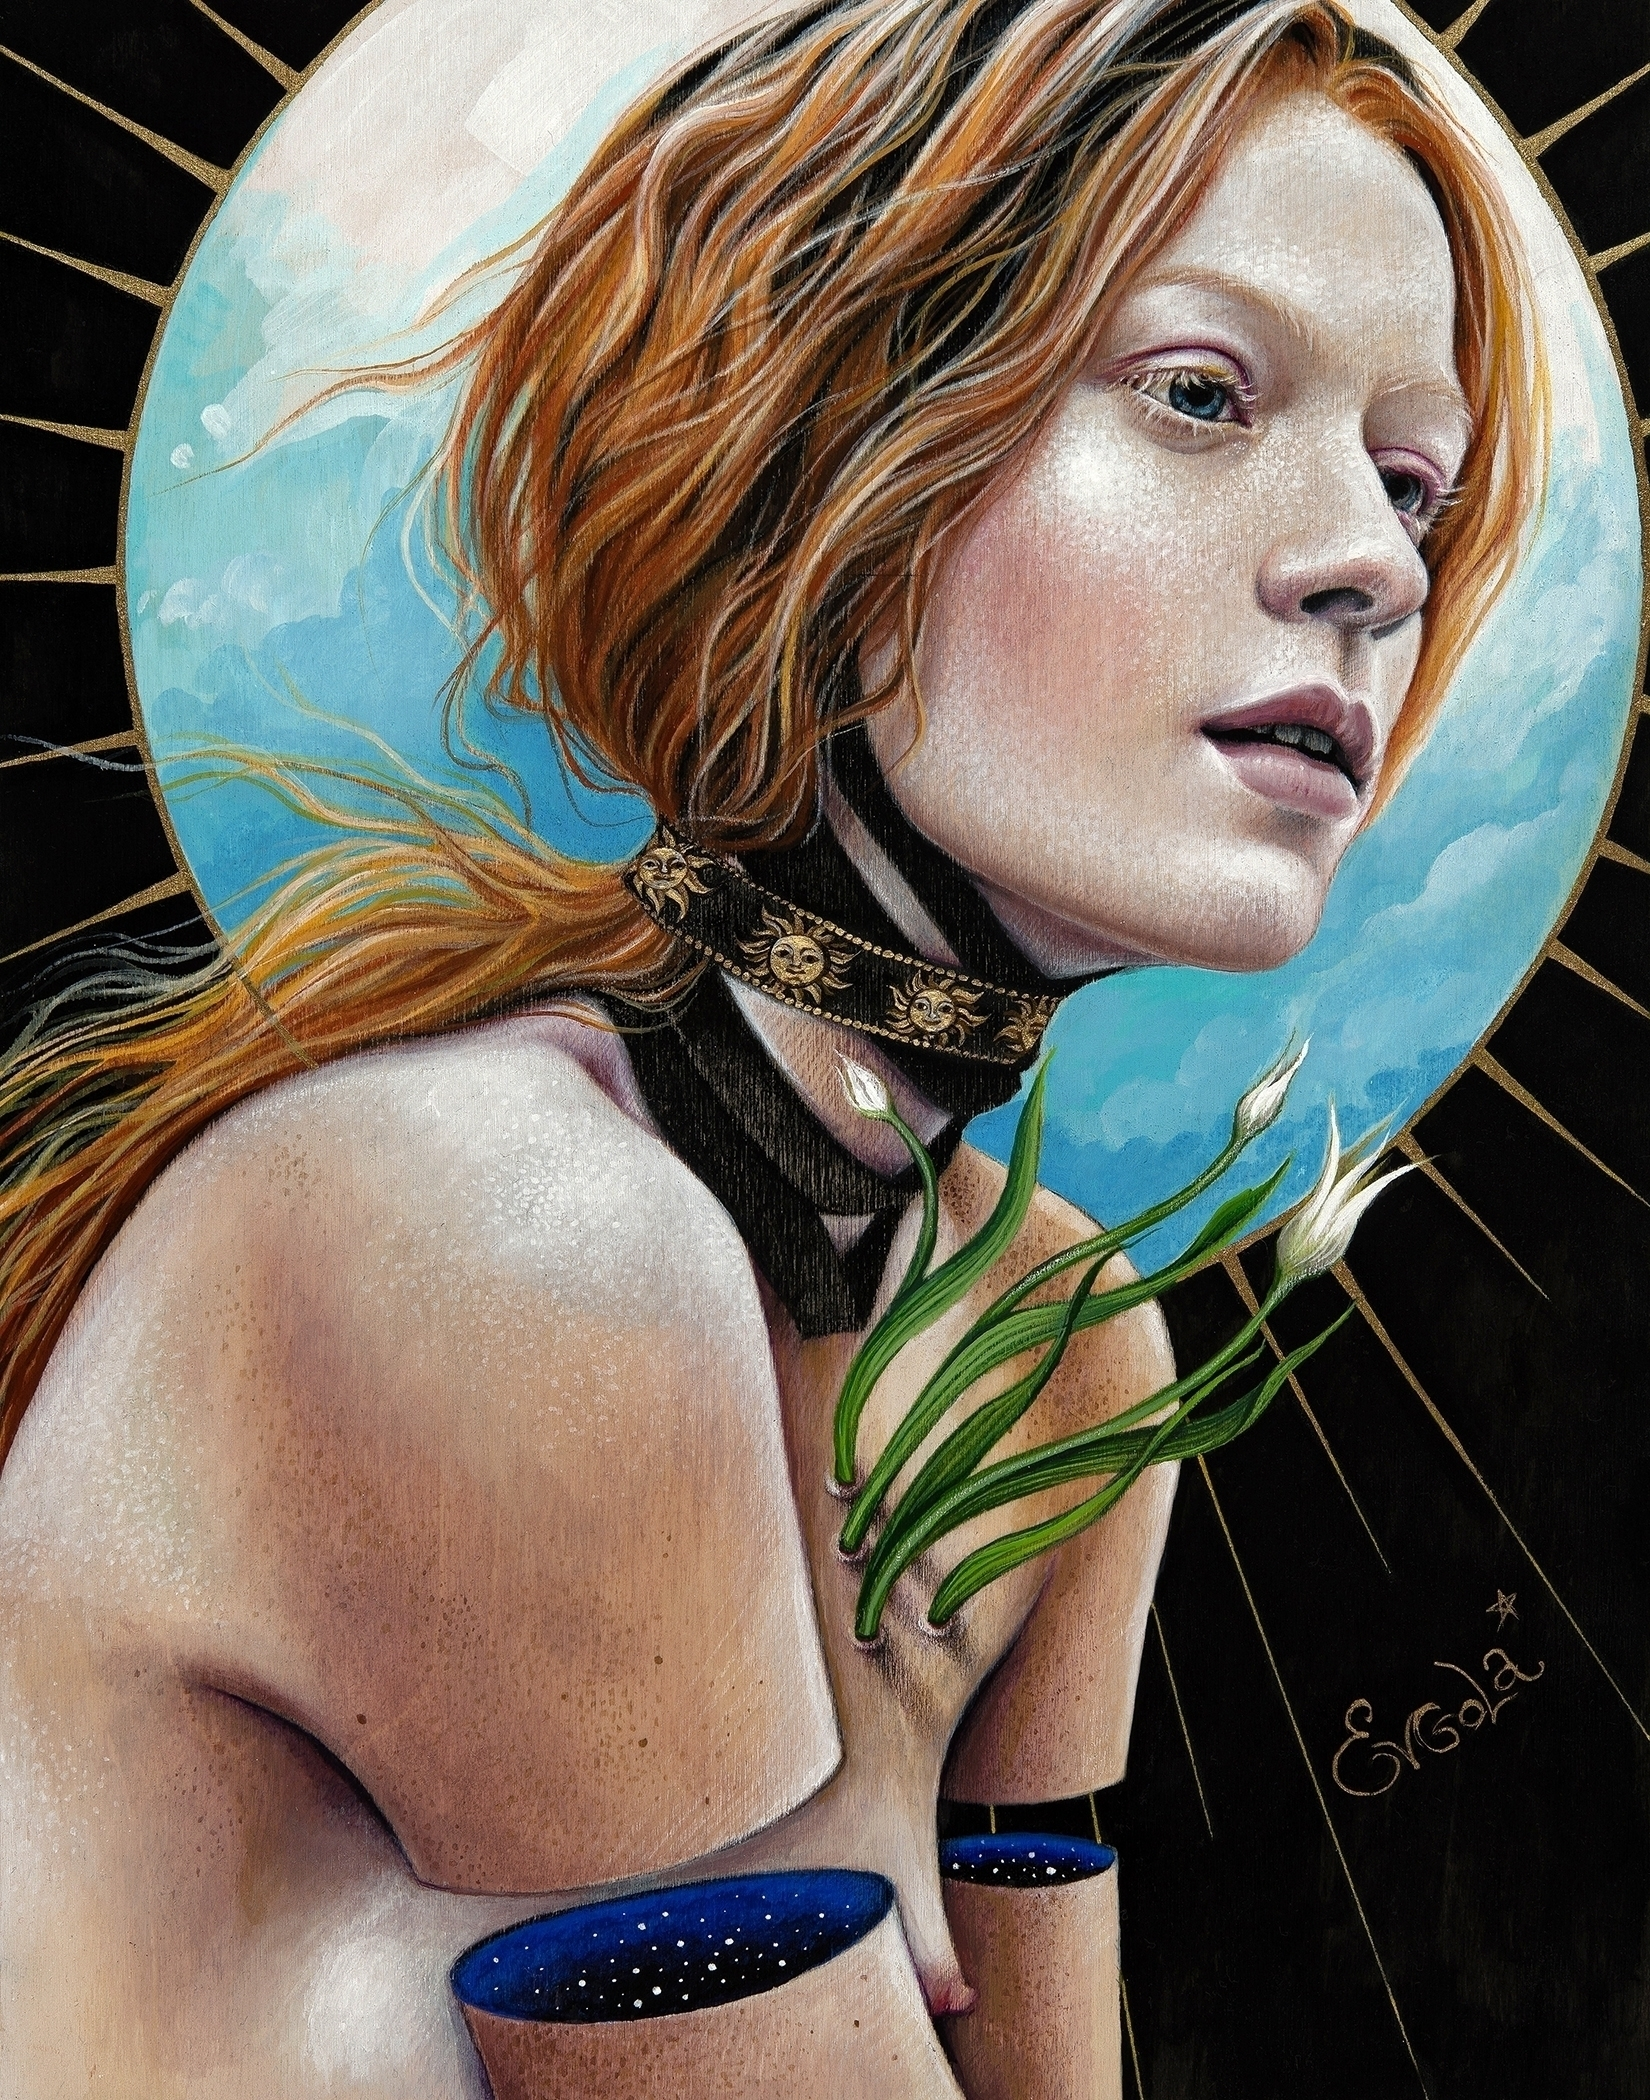 """Venus"" Acrylic, colored pencil - evgola 